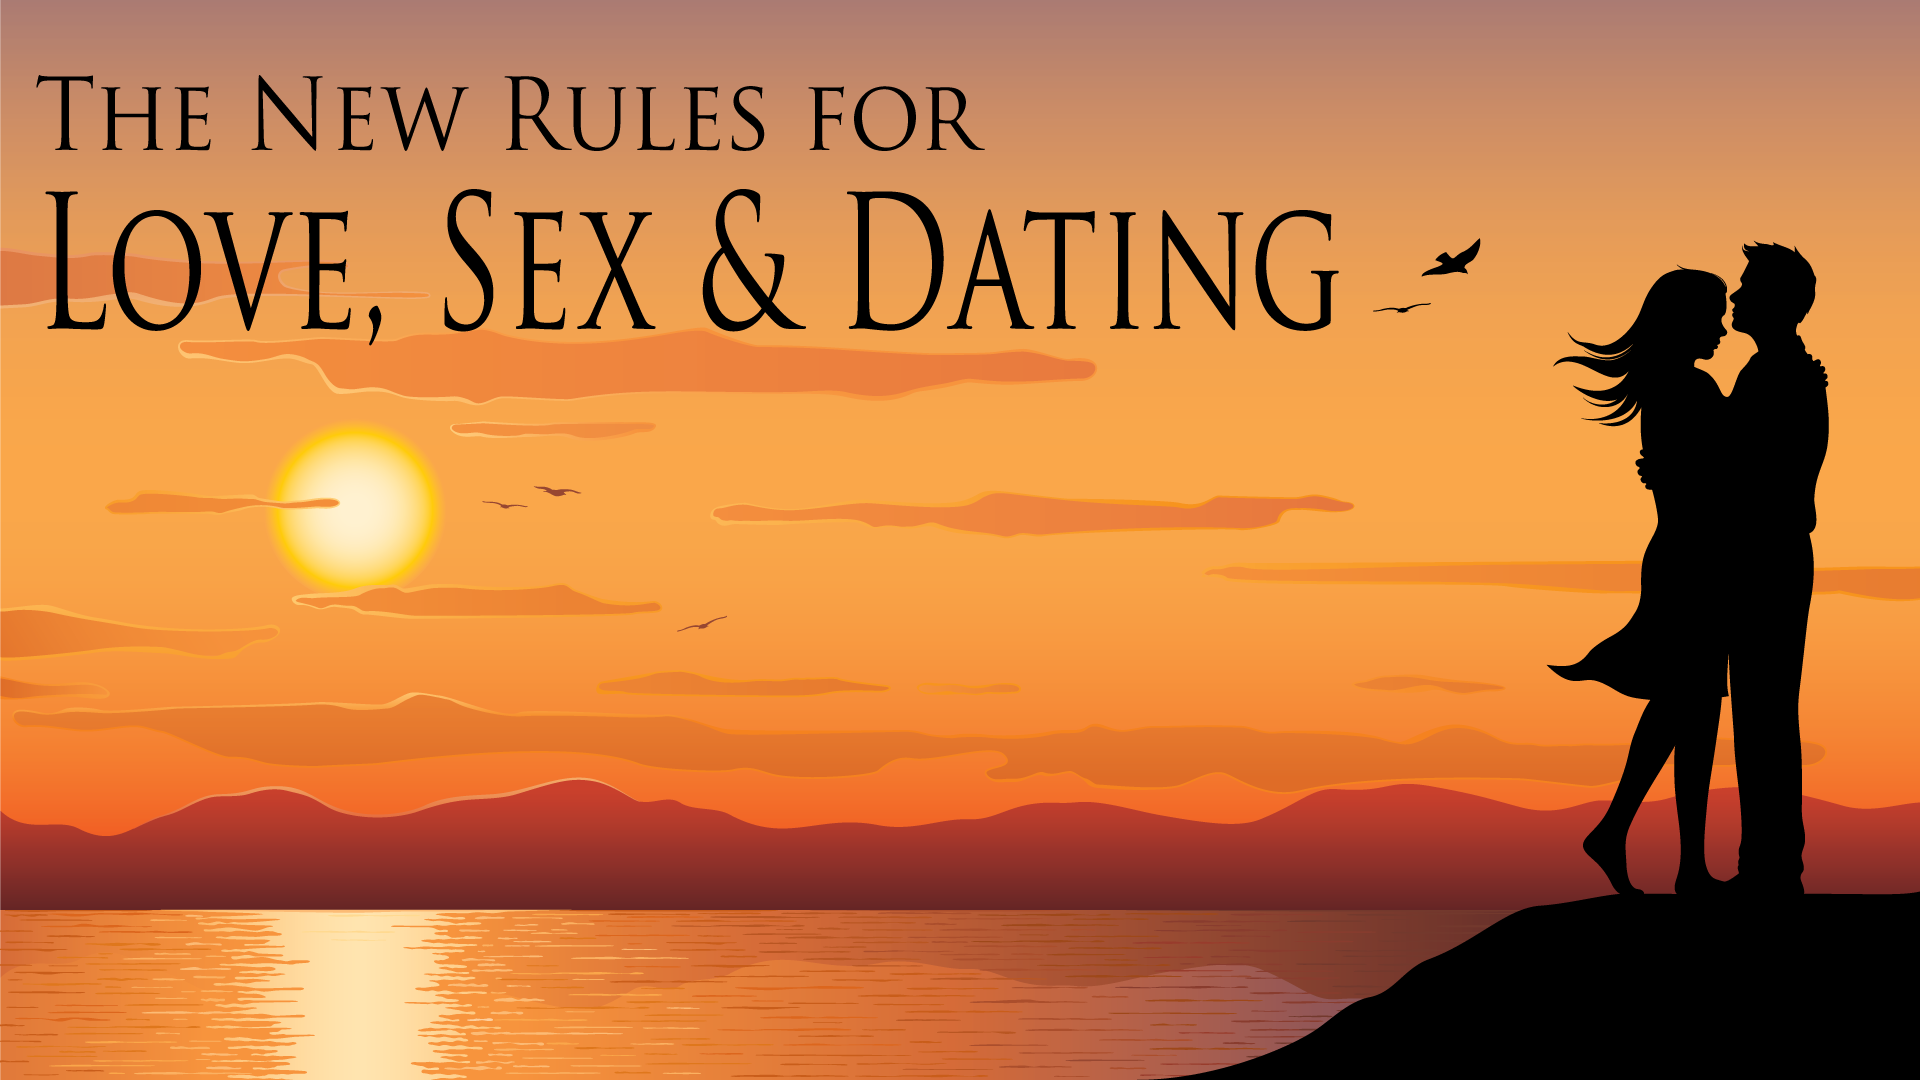 New-Rules-For-Love-Sex-Dating-1920x1080